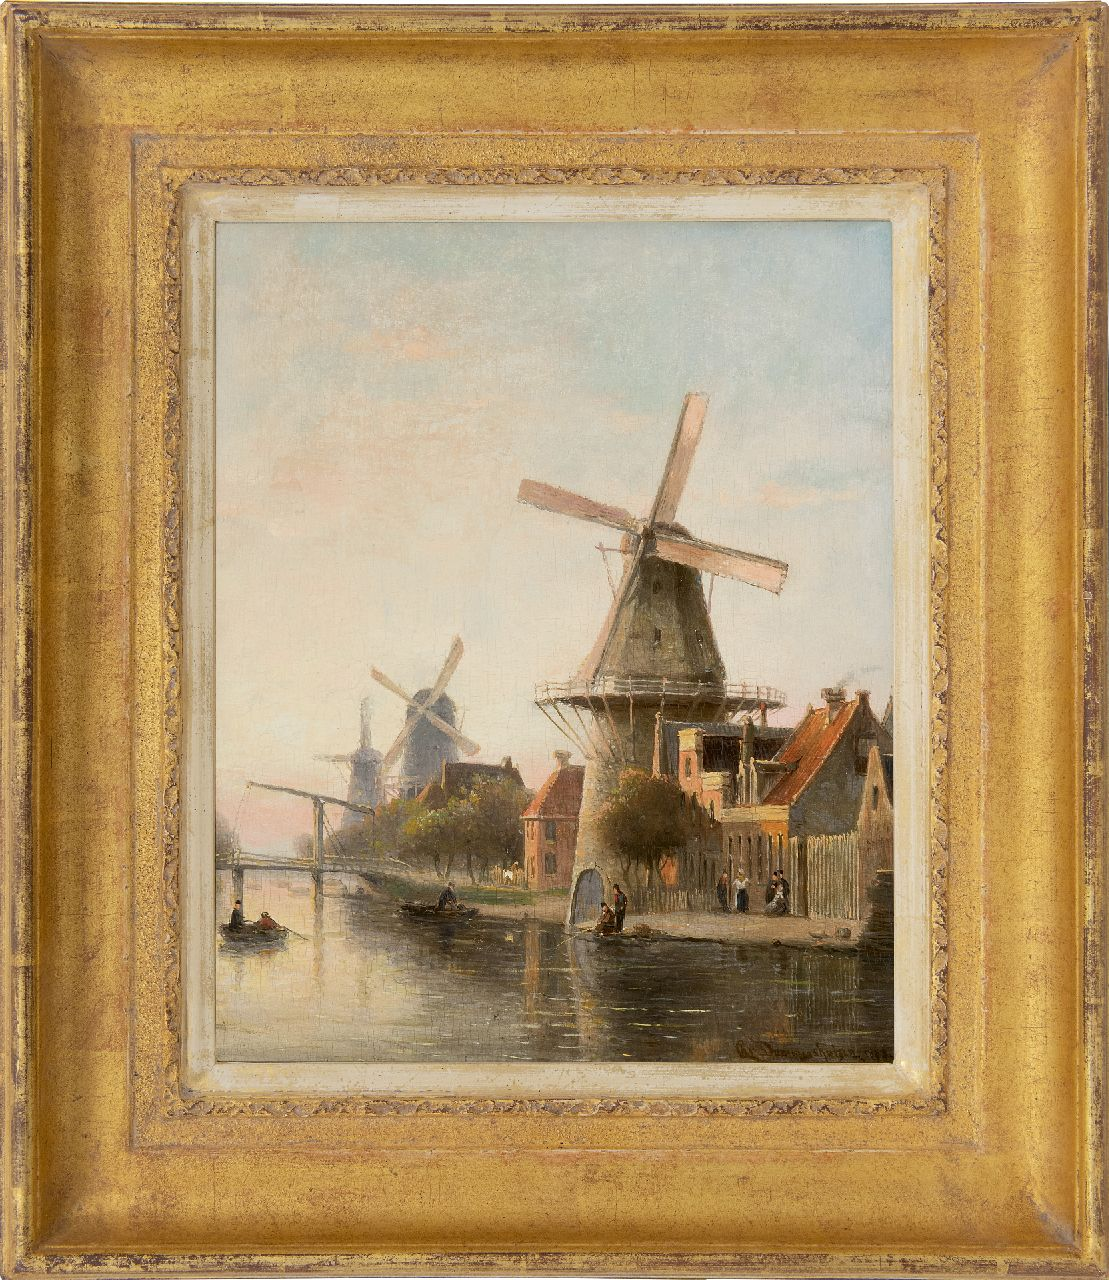 Dommelshuizen C.C.  | Cornelis Christiaan Dommelshuizen, Windmill 'De Rosenboom' near the Overtoom, Amsterdam, oil on panel 28.4 x 23.0 cm, signed l.r. and indistinctly dated 189[?]8